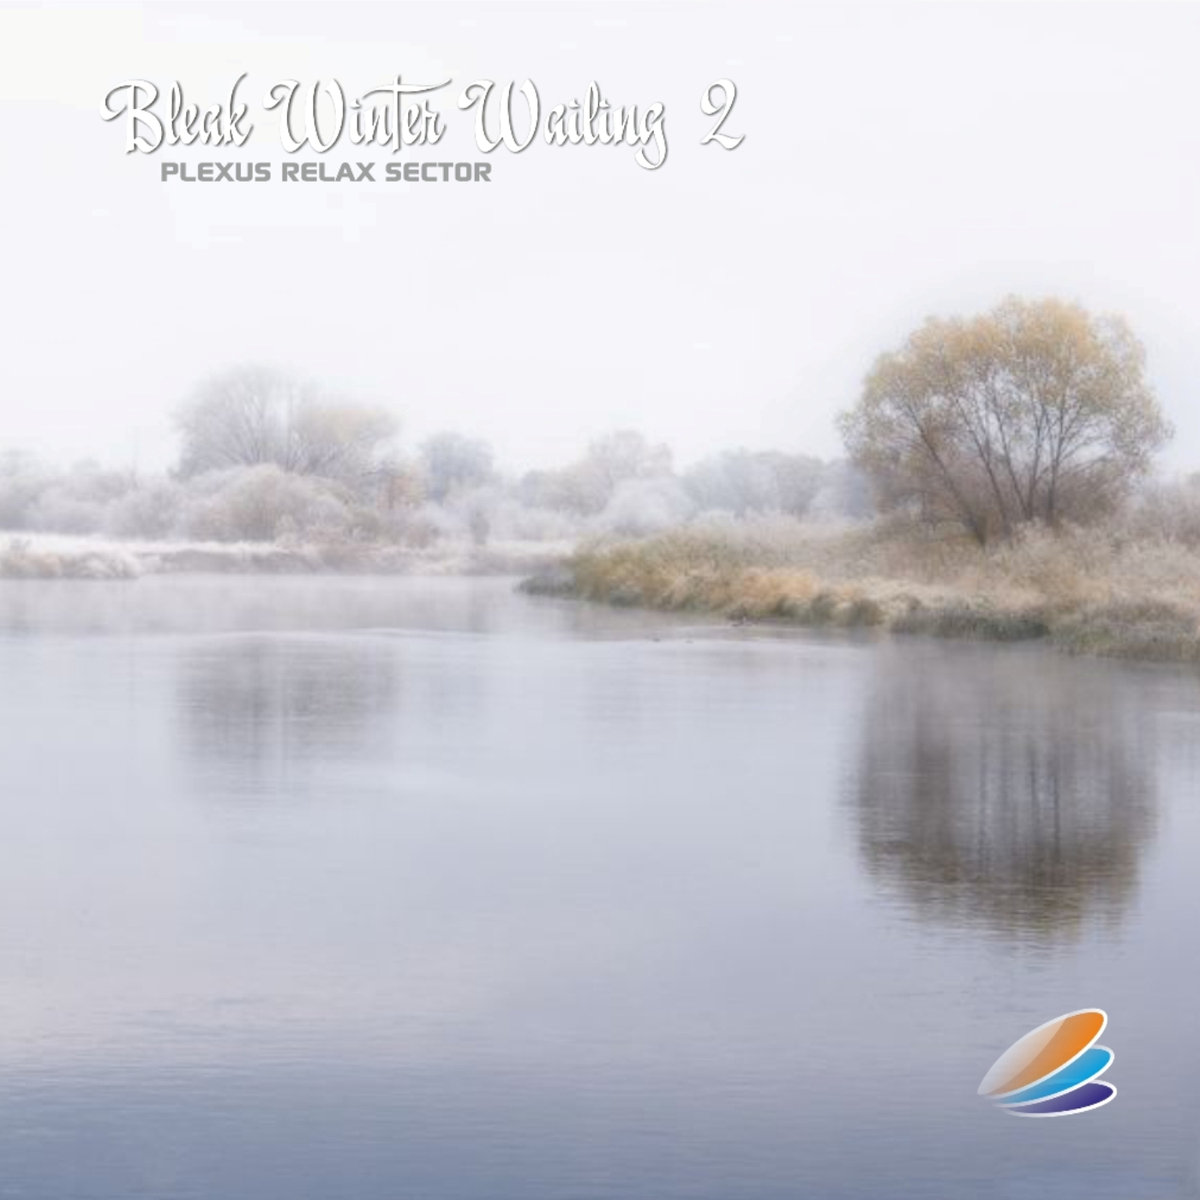 Plexus Relax Sector - Bleak Winter Wailing - 2